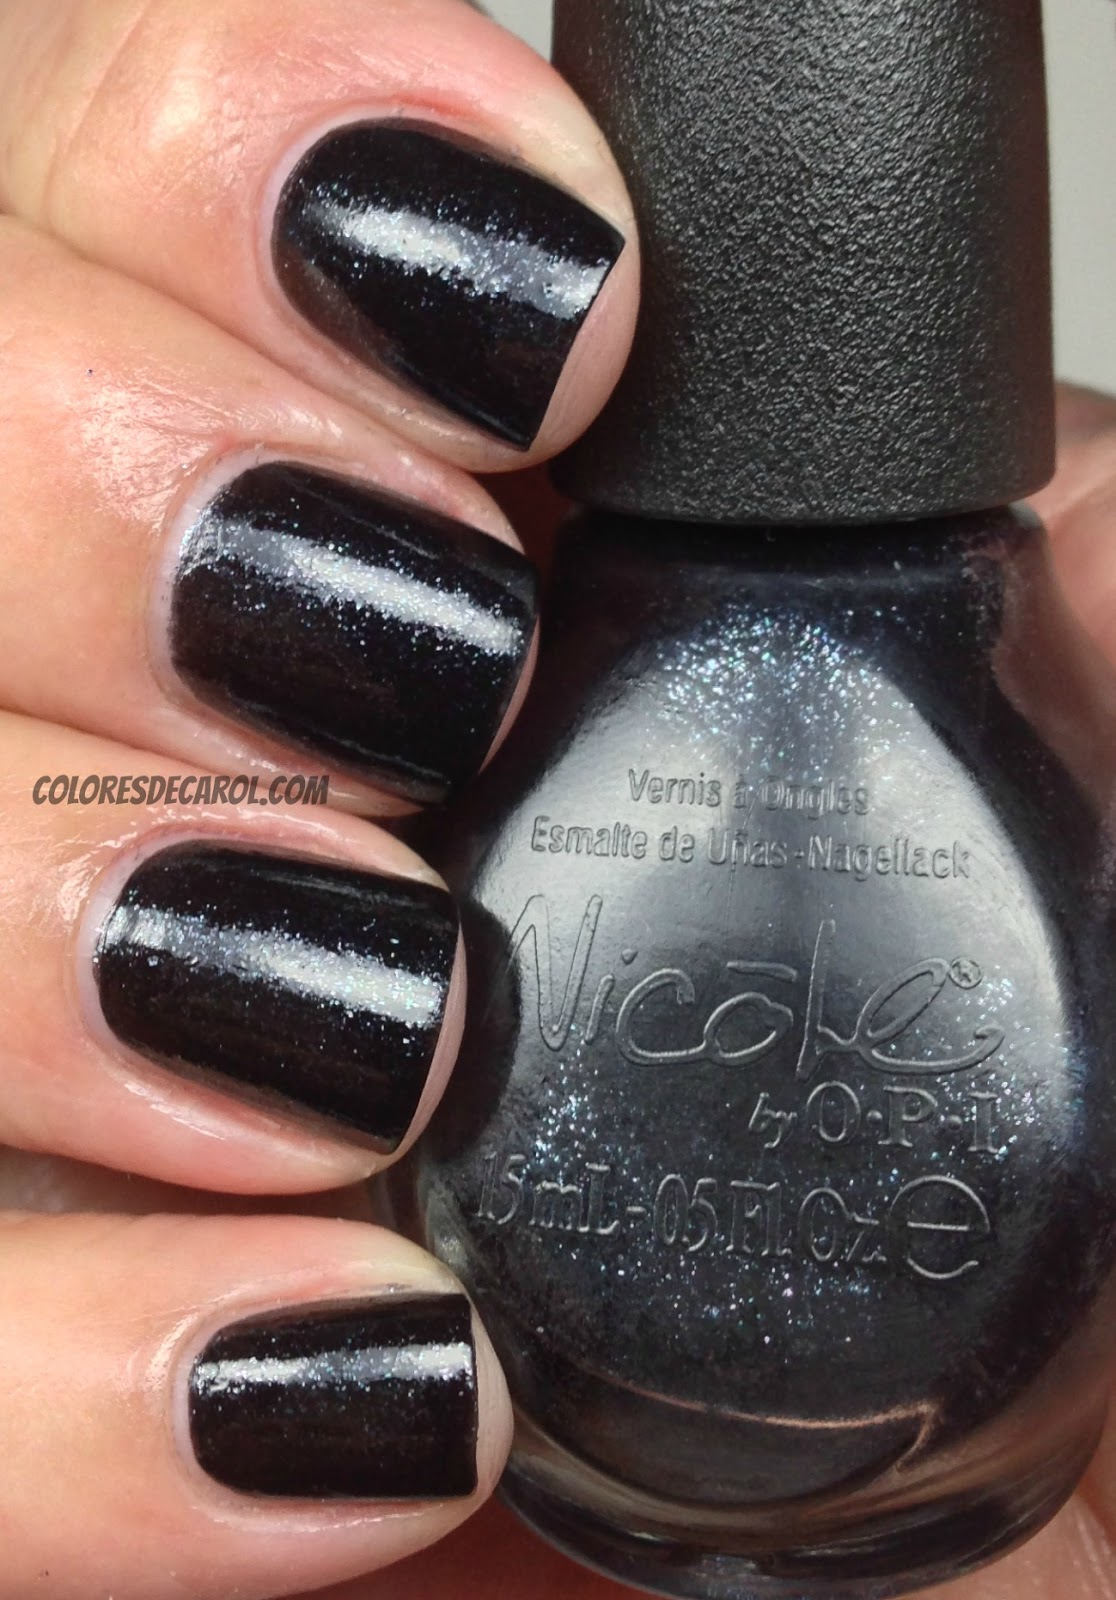 Colores de Carol: Nicole by OPI - Totally In The Dark